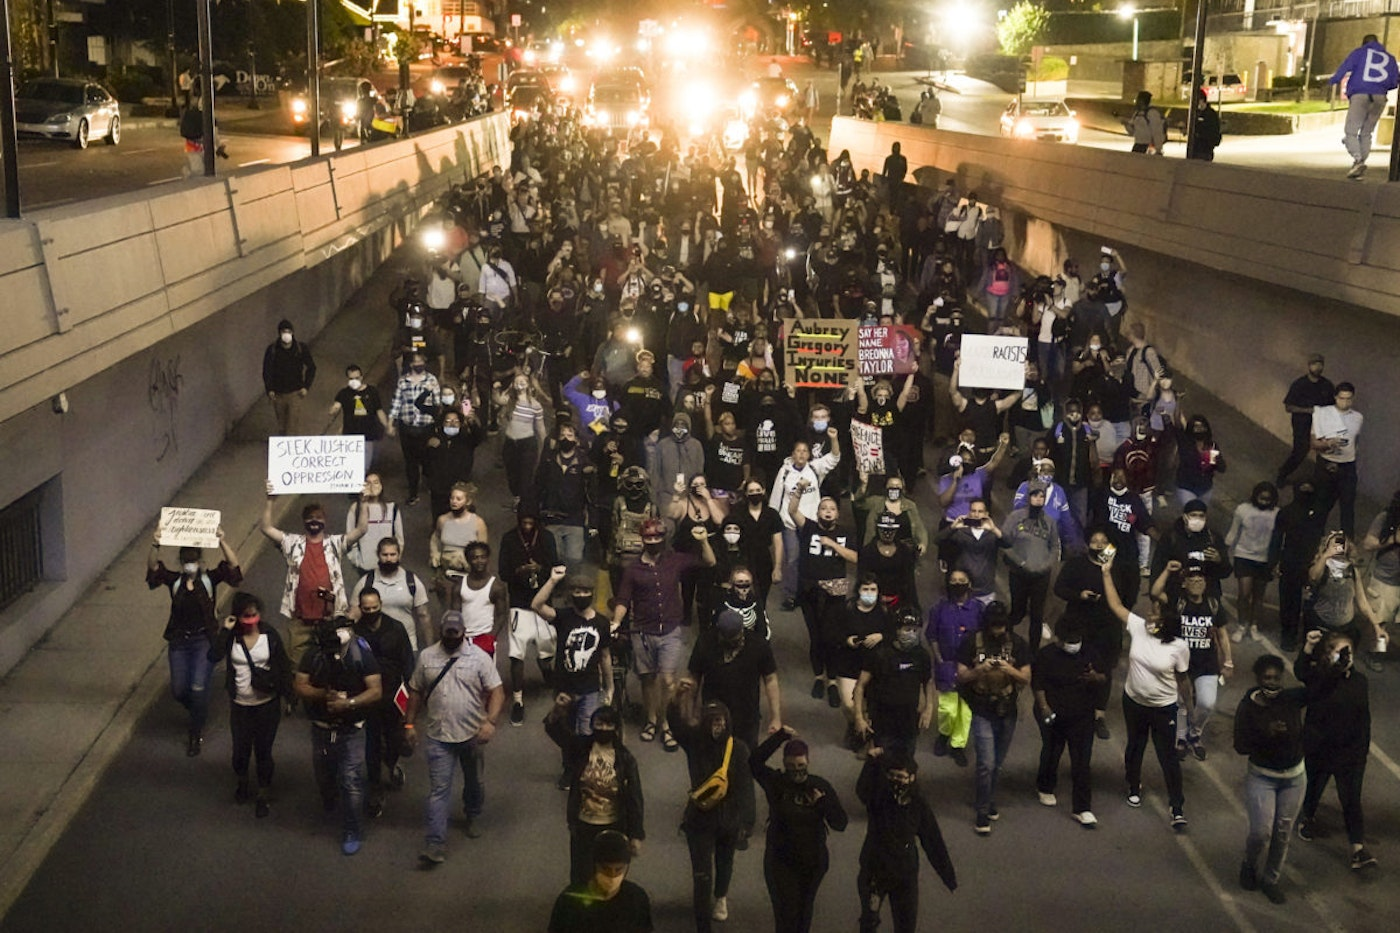 Protests against racial injustice continued this week after a Kentucky grand jury decided not to charge any officers for the death of Breonna Taylor while she slept in her apartment (AP Photo/John Minchillo)